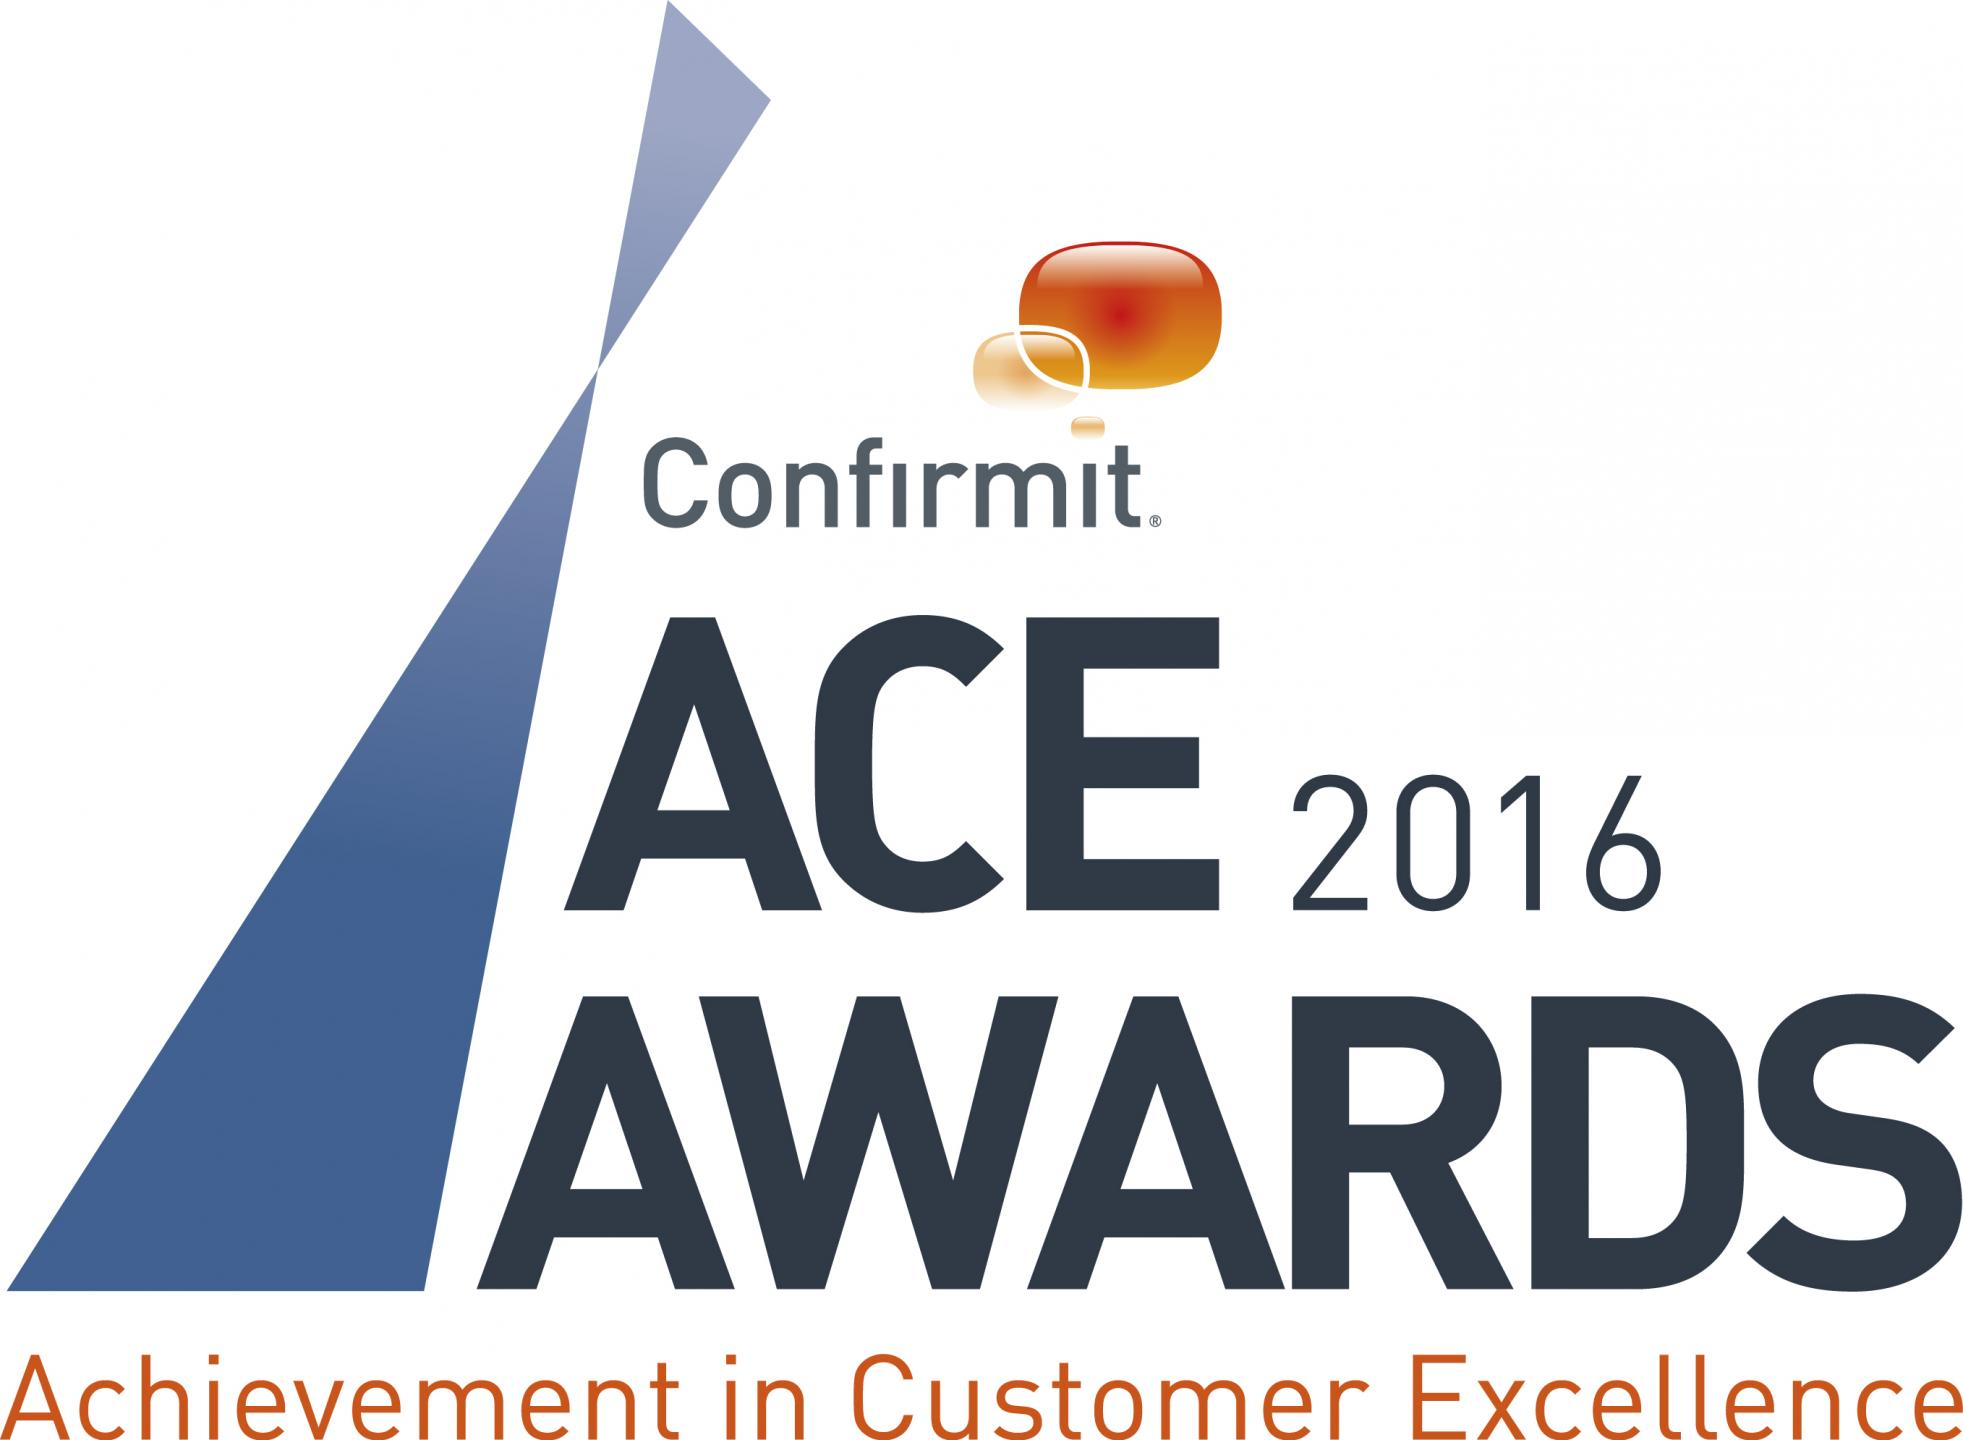 Asurion Honored as a 2016 Confirmit ACE Award Winner